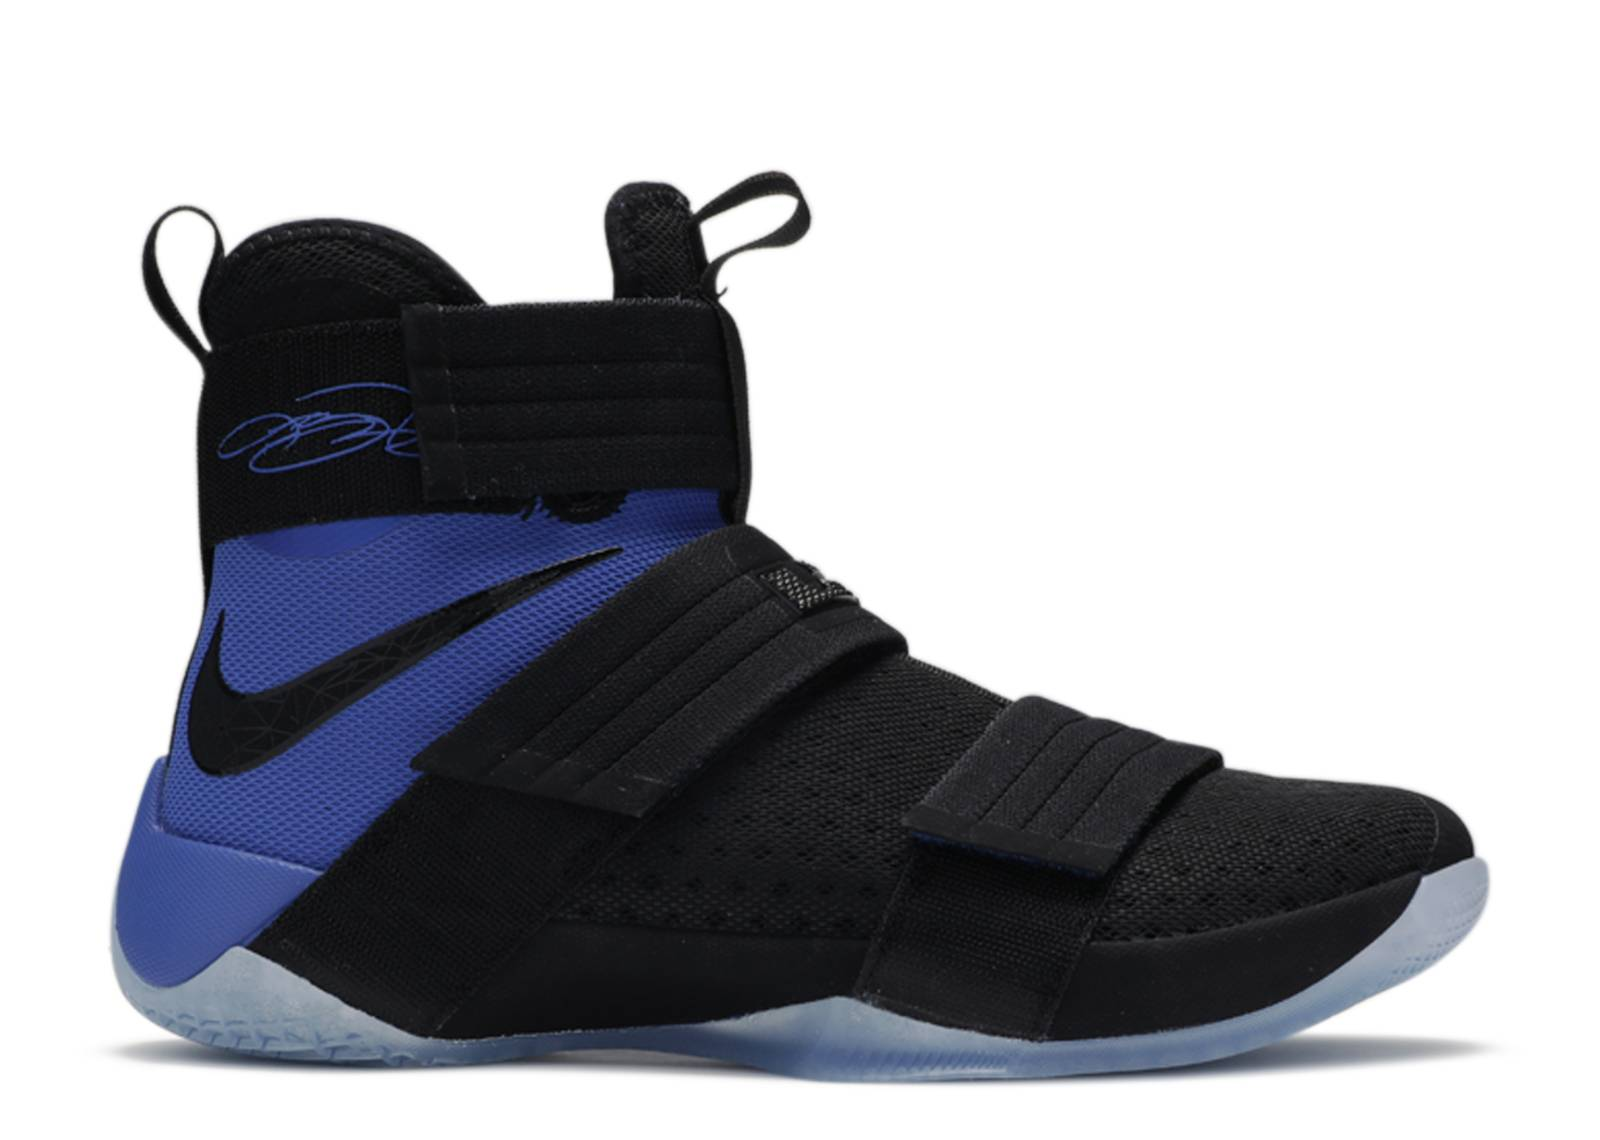 new arrivals ba2b1 3f0cf Lebron James - Nike Basketball - Nike | Flight Club